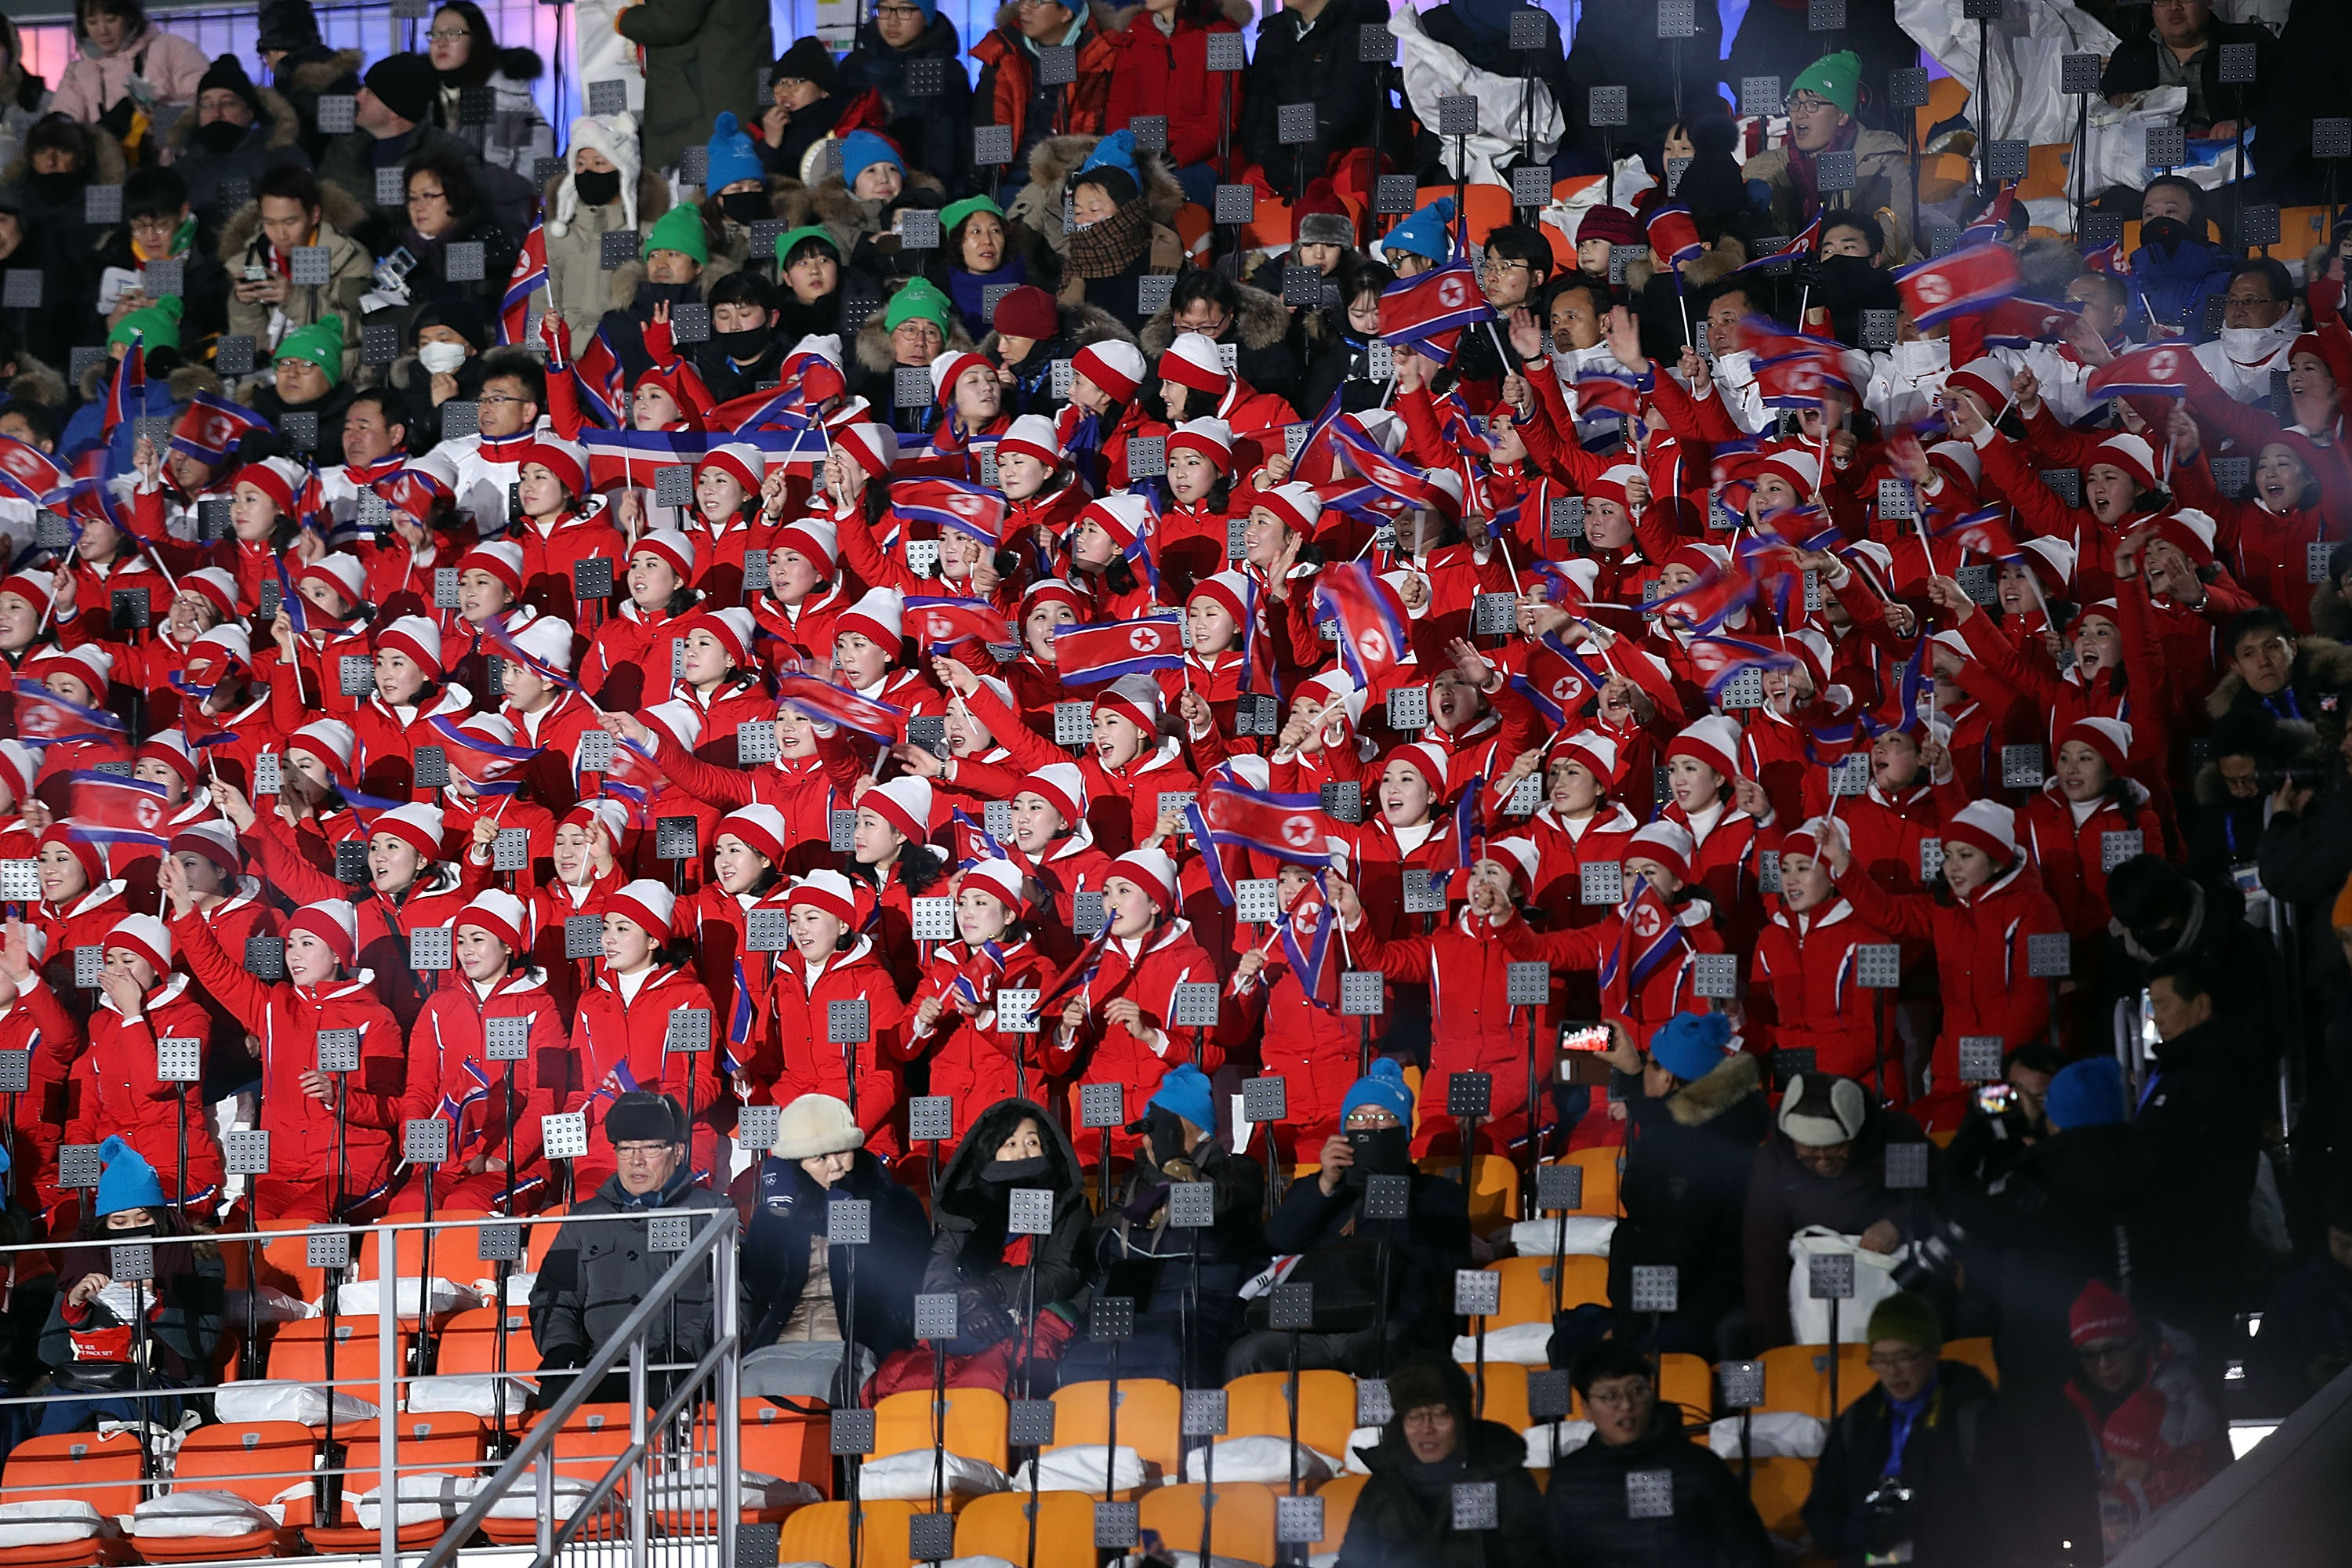 PYEONGCHANG-GUN, SOUTH KOREA - FEBRUARY 09:  North Korean school children are seen during the Opening Ceremony of the PyeongChang 2018 Winter Olympic Games at PyeongChang Olympic Stadium on February 9, 2018 in Pyeongchang-gun, South Korea.  fee liable image, copyright © ATP  Amin JAMALI  XXIII. OLYMPIC WINTER GAMES PYEONGCHANG 2018: OPENING CEREMONY,  PyeongChang, Korea, Winter Olympics; PyeongChang Olympic Stadium, on 9. February 2018, fee liable image, copyright © ATP / Amin JAMALI  Featuring: North Korean school children are seen Where: Pyeongchang, Gangwon Province, South Korea When: 09 Feb 2018 Credit: ATP/WENN.com  **Not available for publication in Germany or France. No Contact Music.**